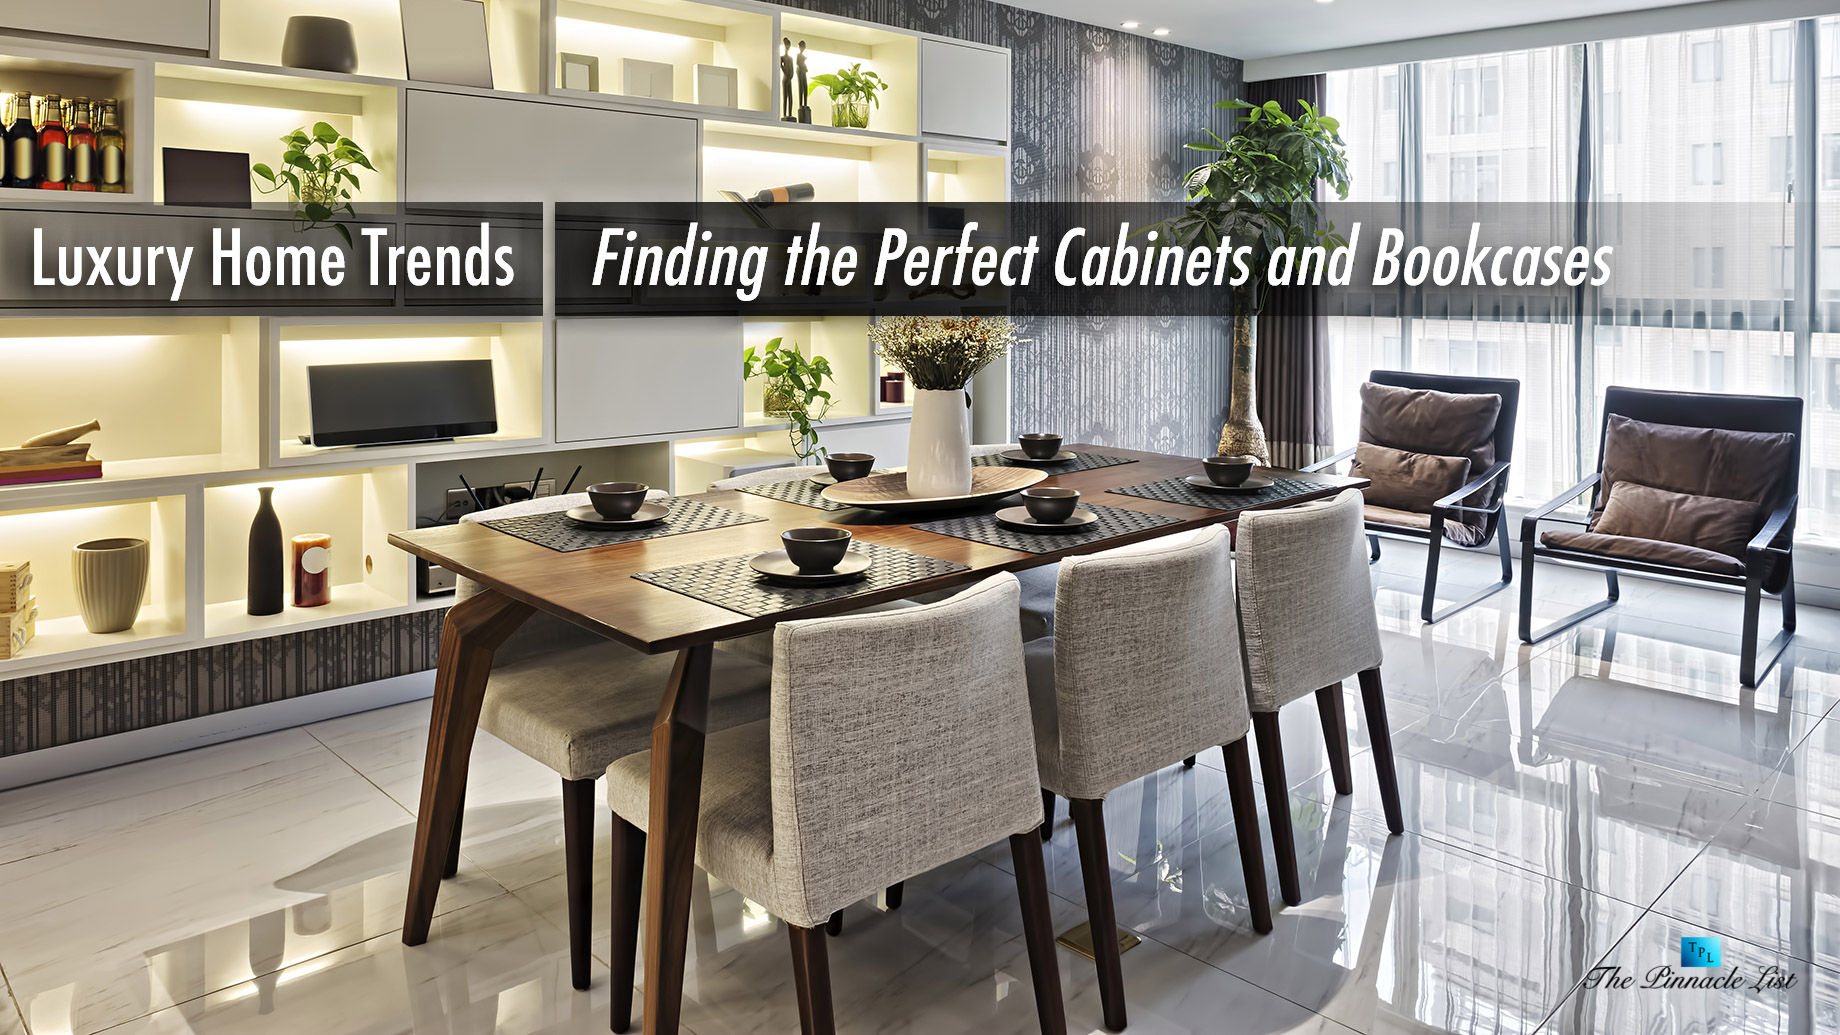 Luxury Home Trends - Finding the Perfect Cabinets and Bookcases